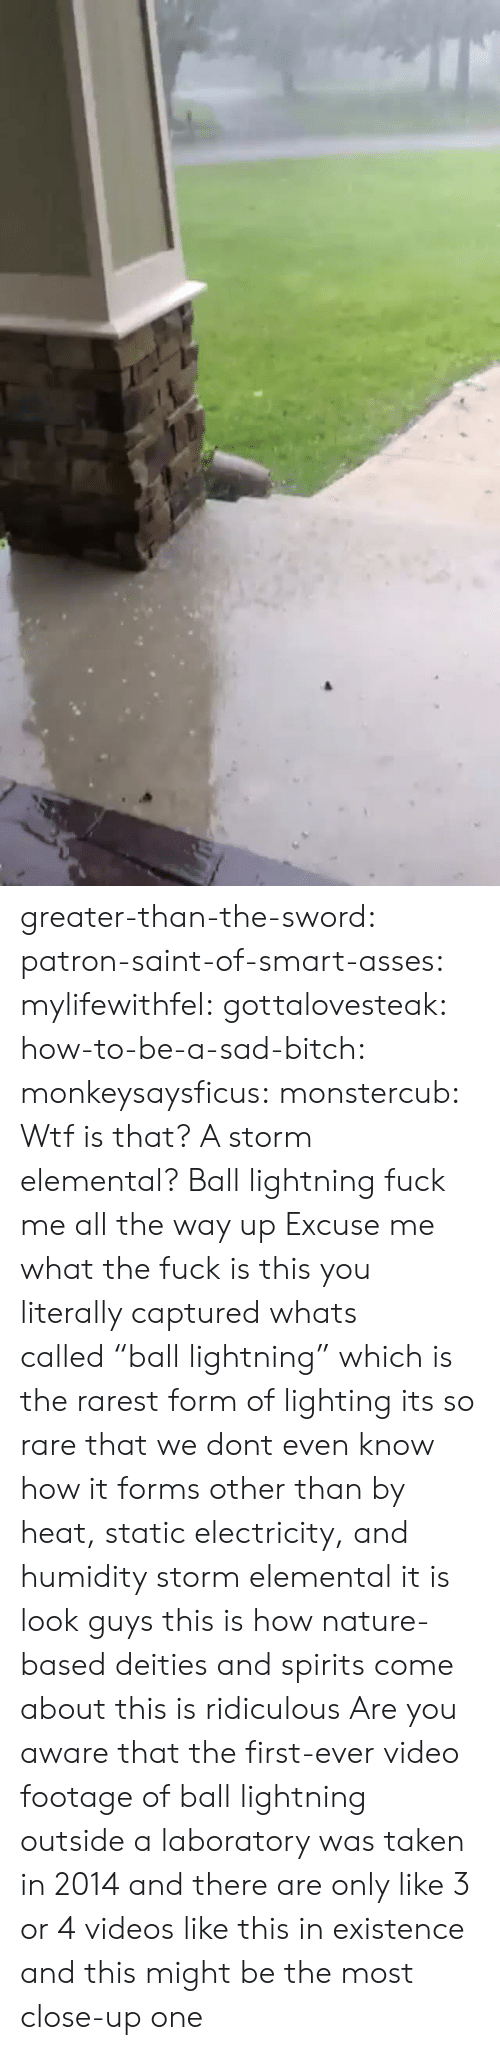 """Wtf Is That: greater-than-the-sword:  patron-saint-of-smart-asses:  mylifewithfel:  gottalovesteak:  how-to-be-a-sad-bitch:  monkeysaysficus:   monstercub: Wtf is that? A storm elemental?  Ball lightning fuck me all the way up   Excuse me what the fuck is this  you literally captured whats called""""ball lightning"""" which is the rarest form of lighting its so rare that we dont even know how it forms other than by heat, static electricity, and humidity  storm elemental it is  look guys this is how nature-based deities and spirits come about this is ridiculous  Are you aware that the first-ever video footage of ball lightning outside a laboratory was taken in 2014 and there are only like 3 or 4 videos like this in existence and this might be the most close-up one"""